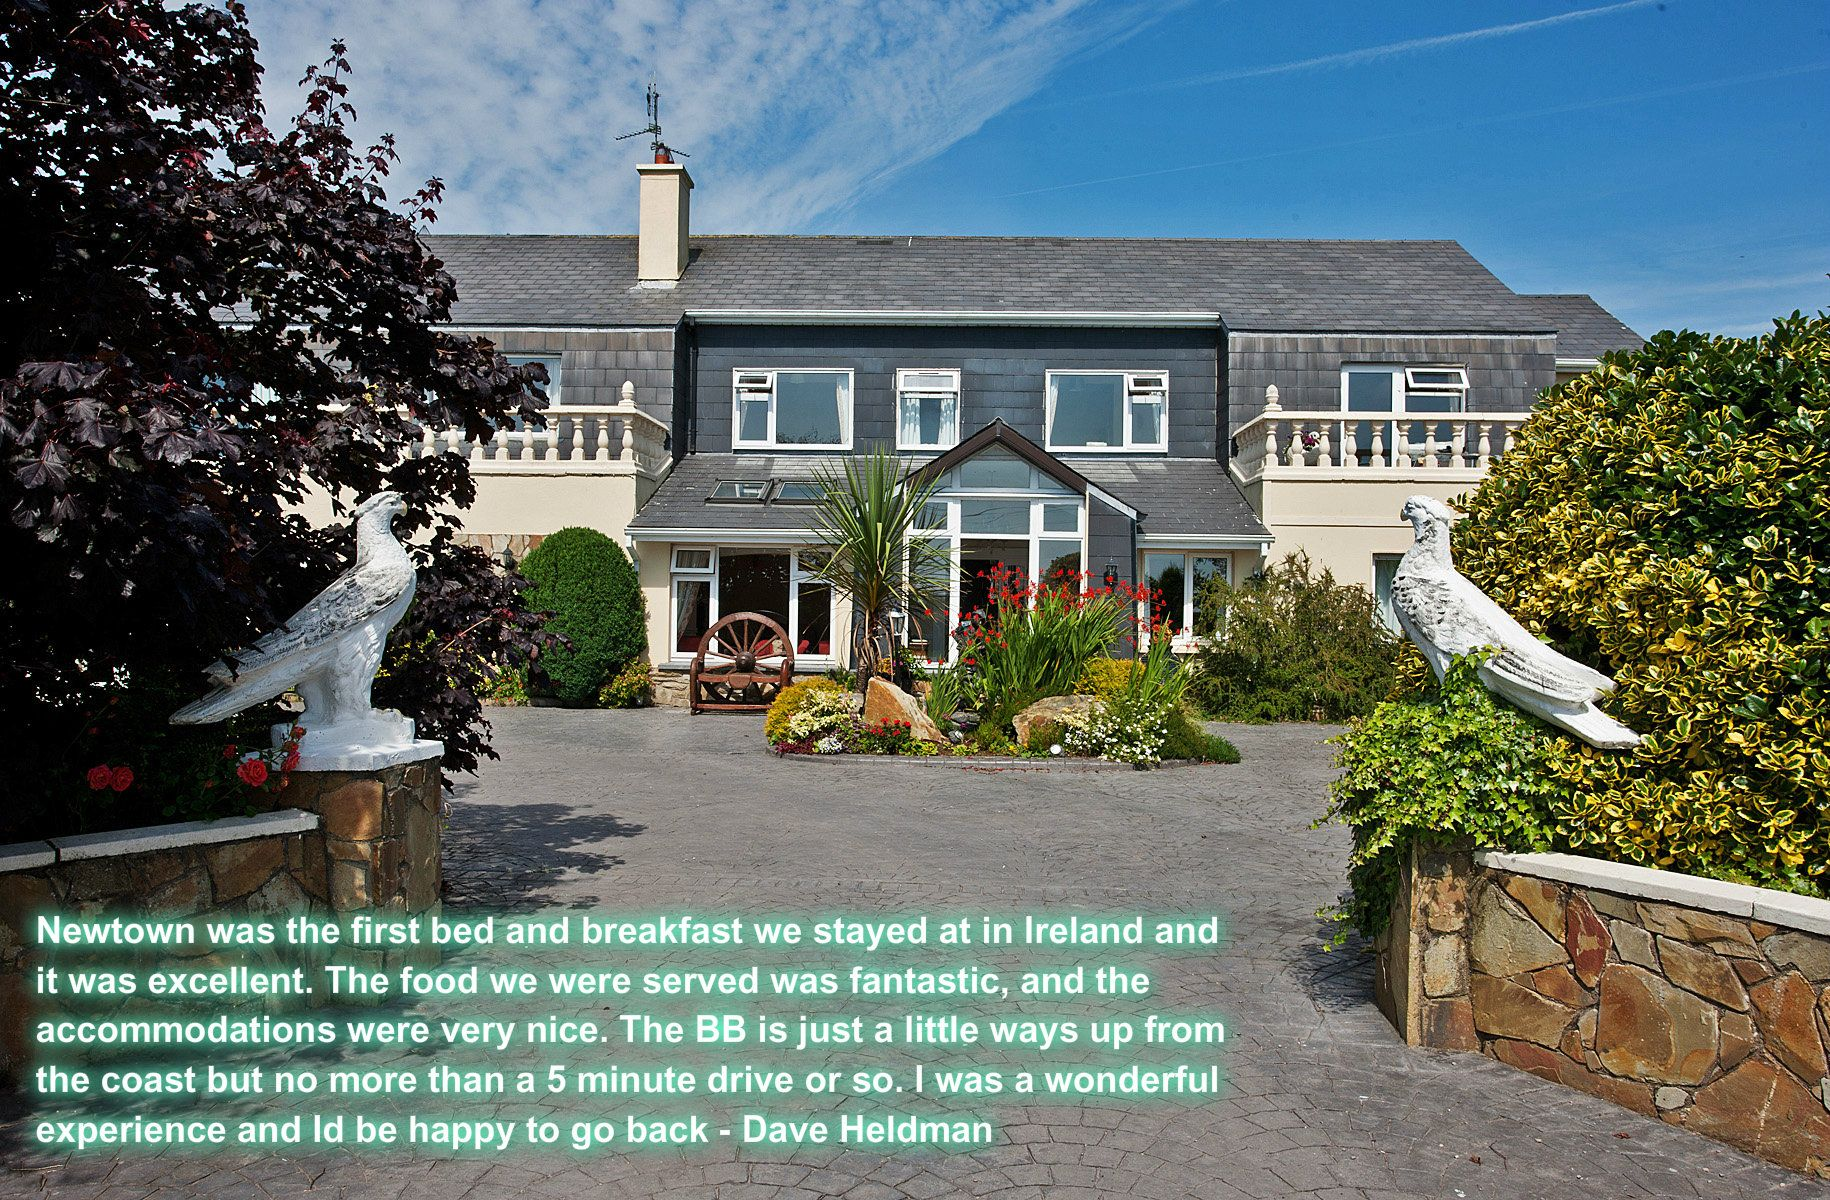 An Exceptional 4 Star Bed And Breakfast Brimming With Charm